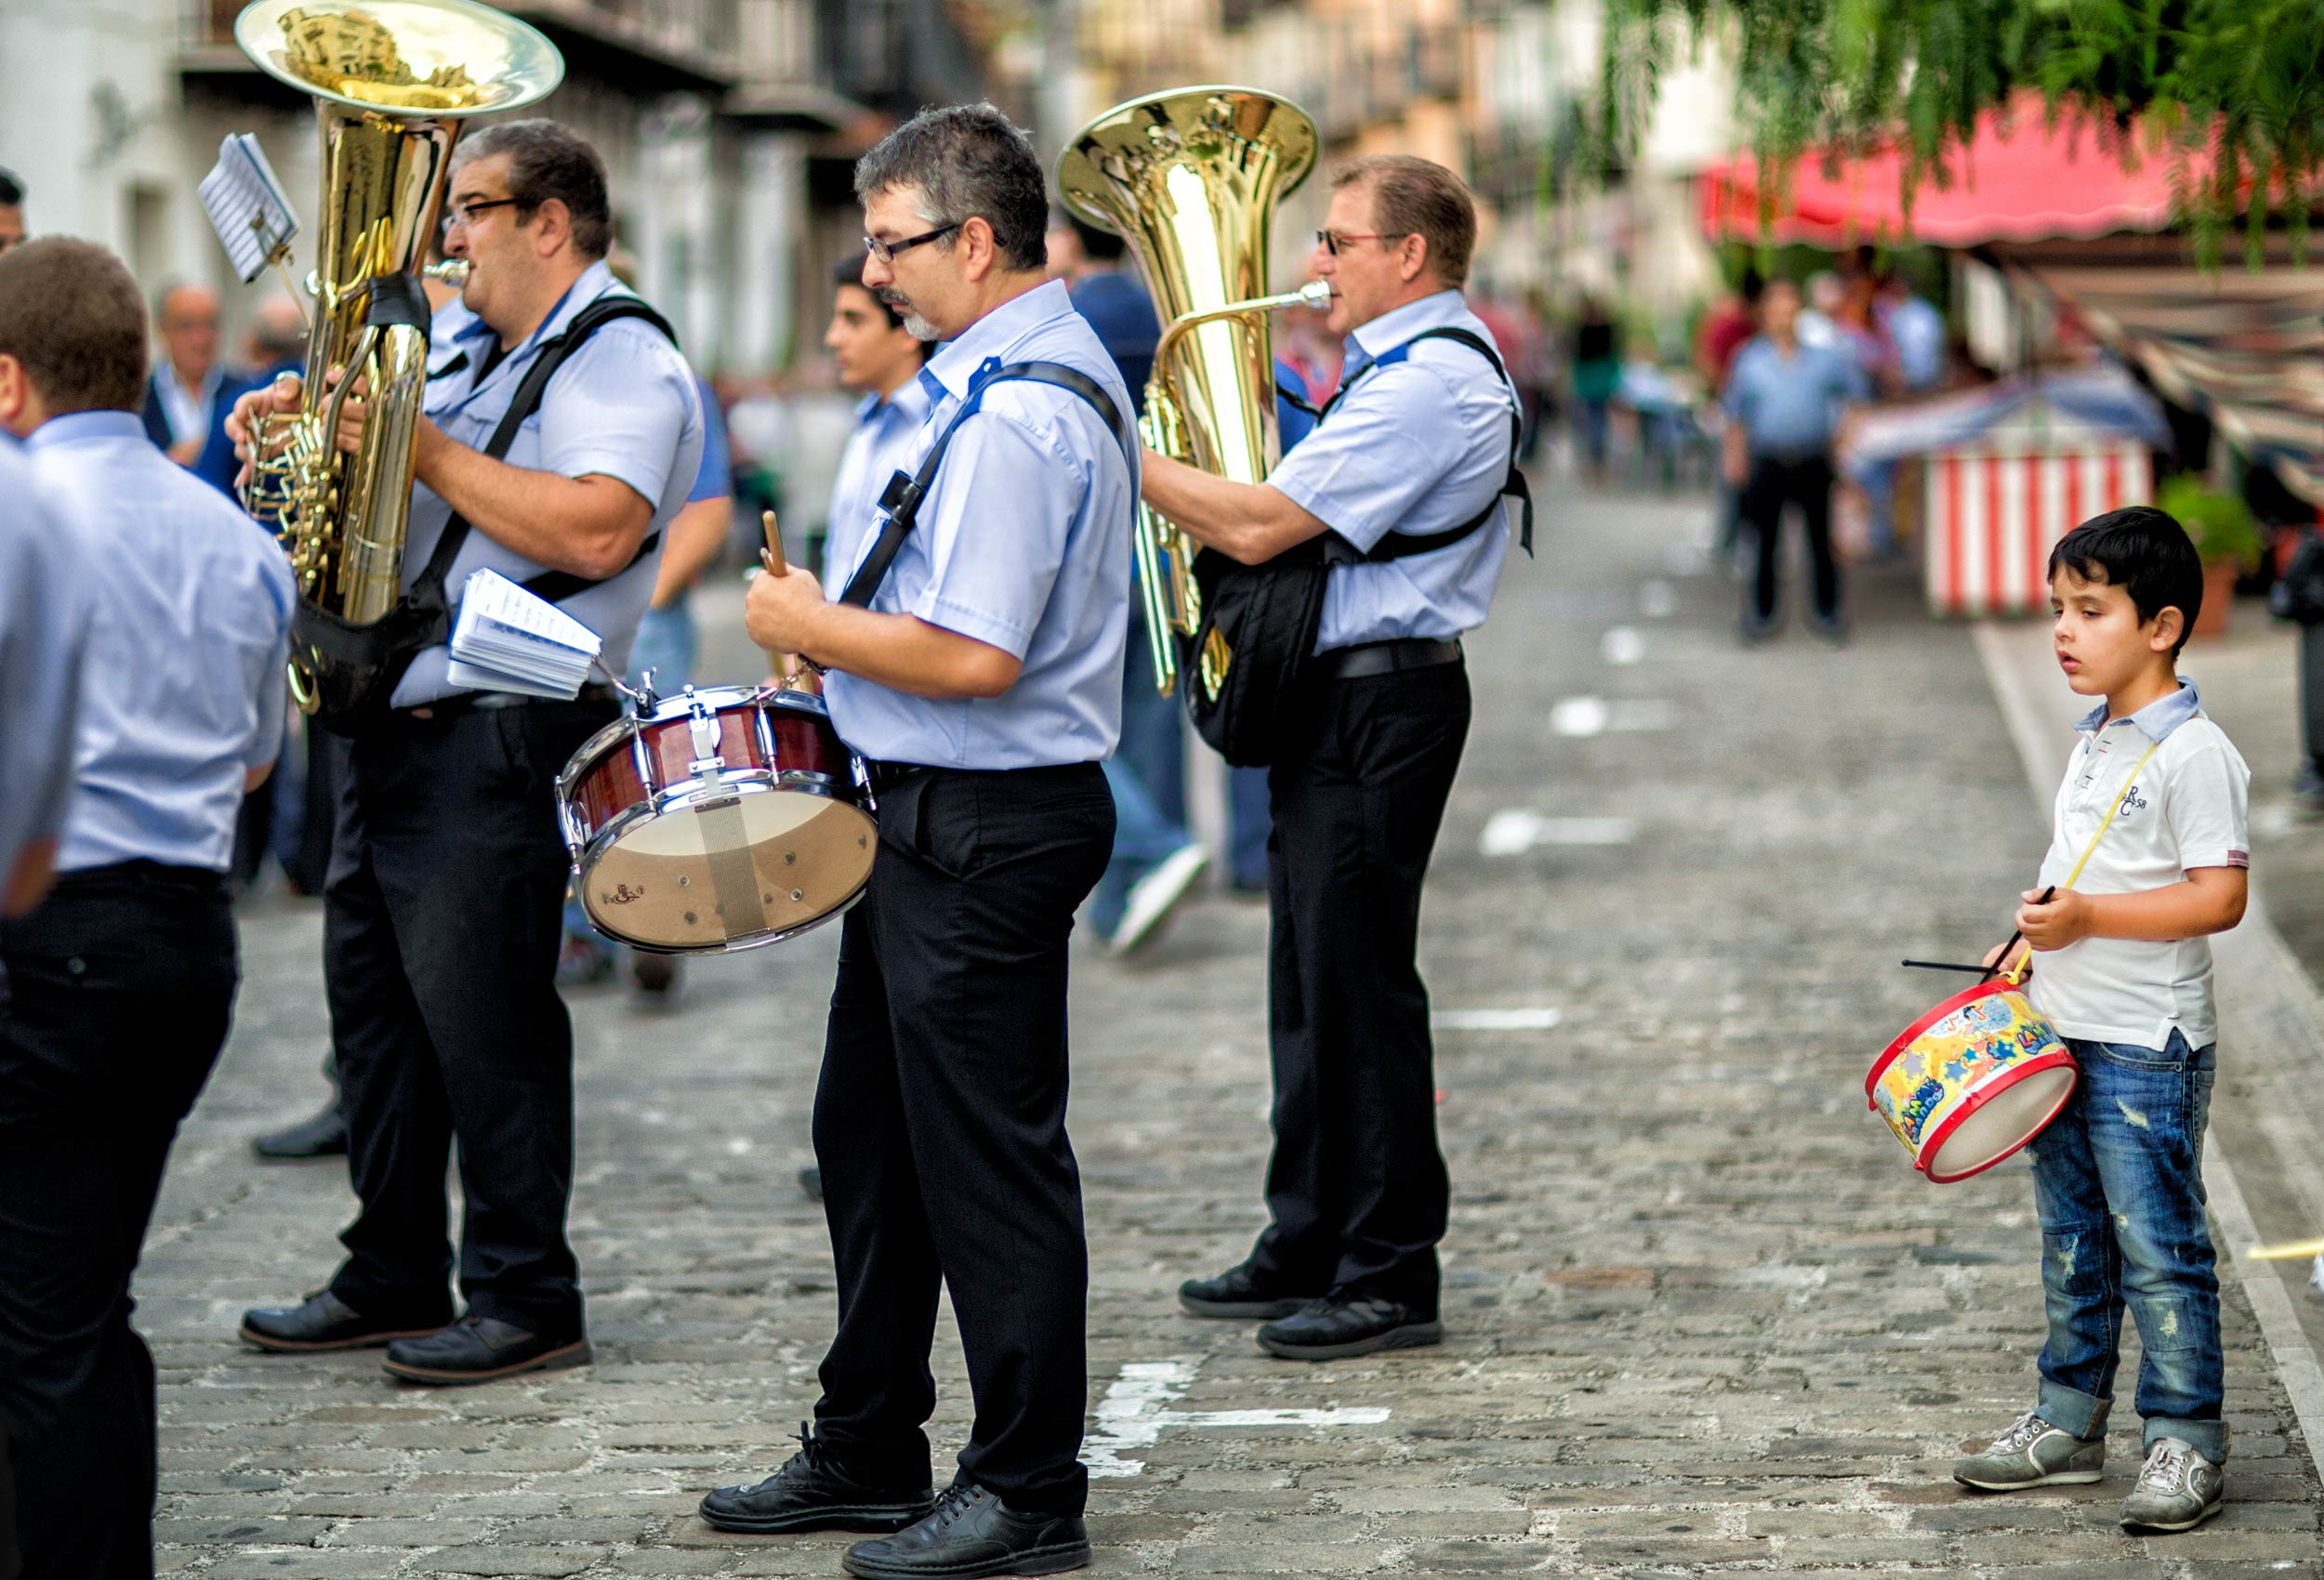 a-young-boy-with-his-toy-drum-joins-a-professional-band-on-the-streets-of-graterri-sicily